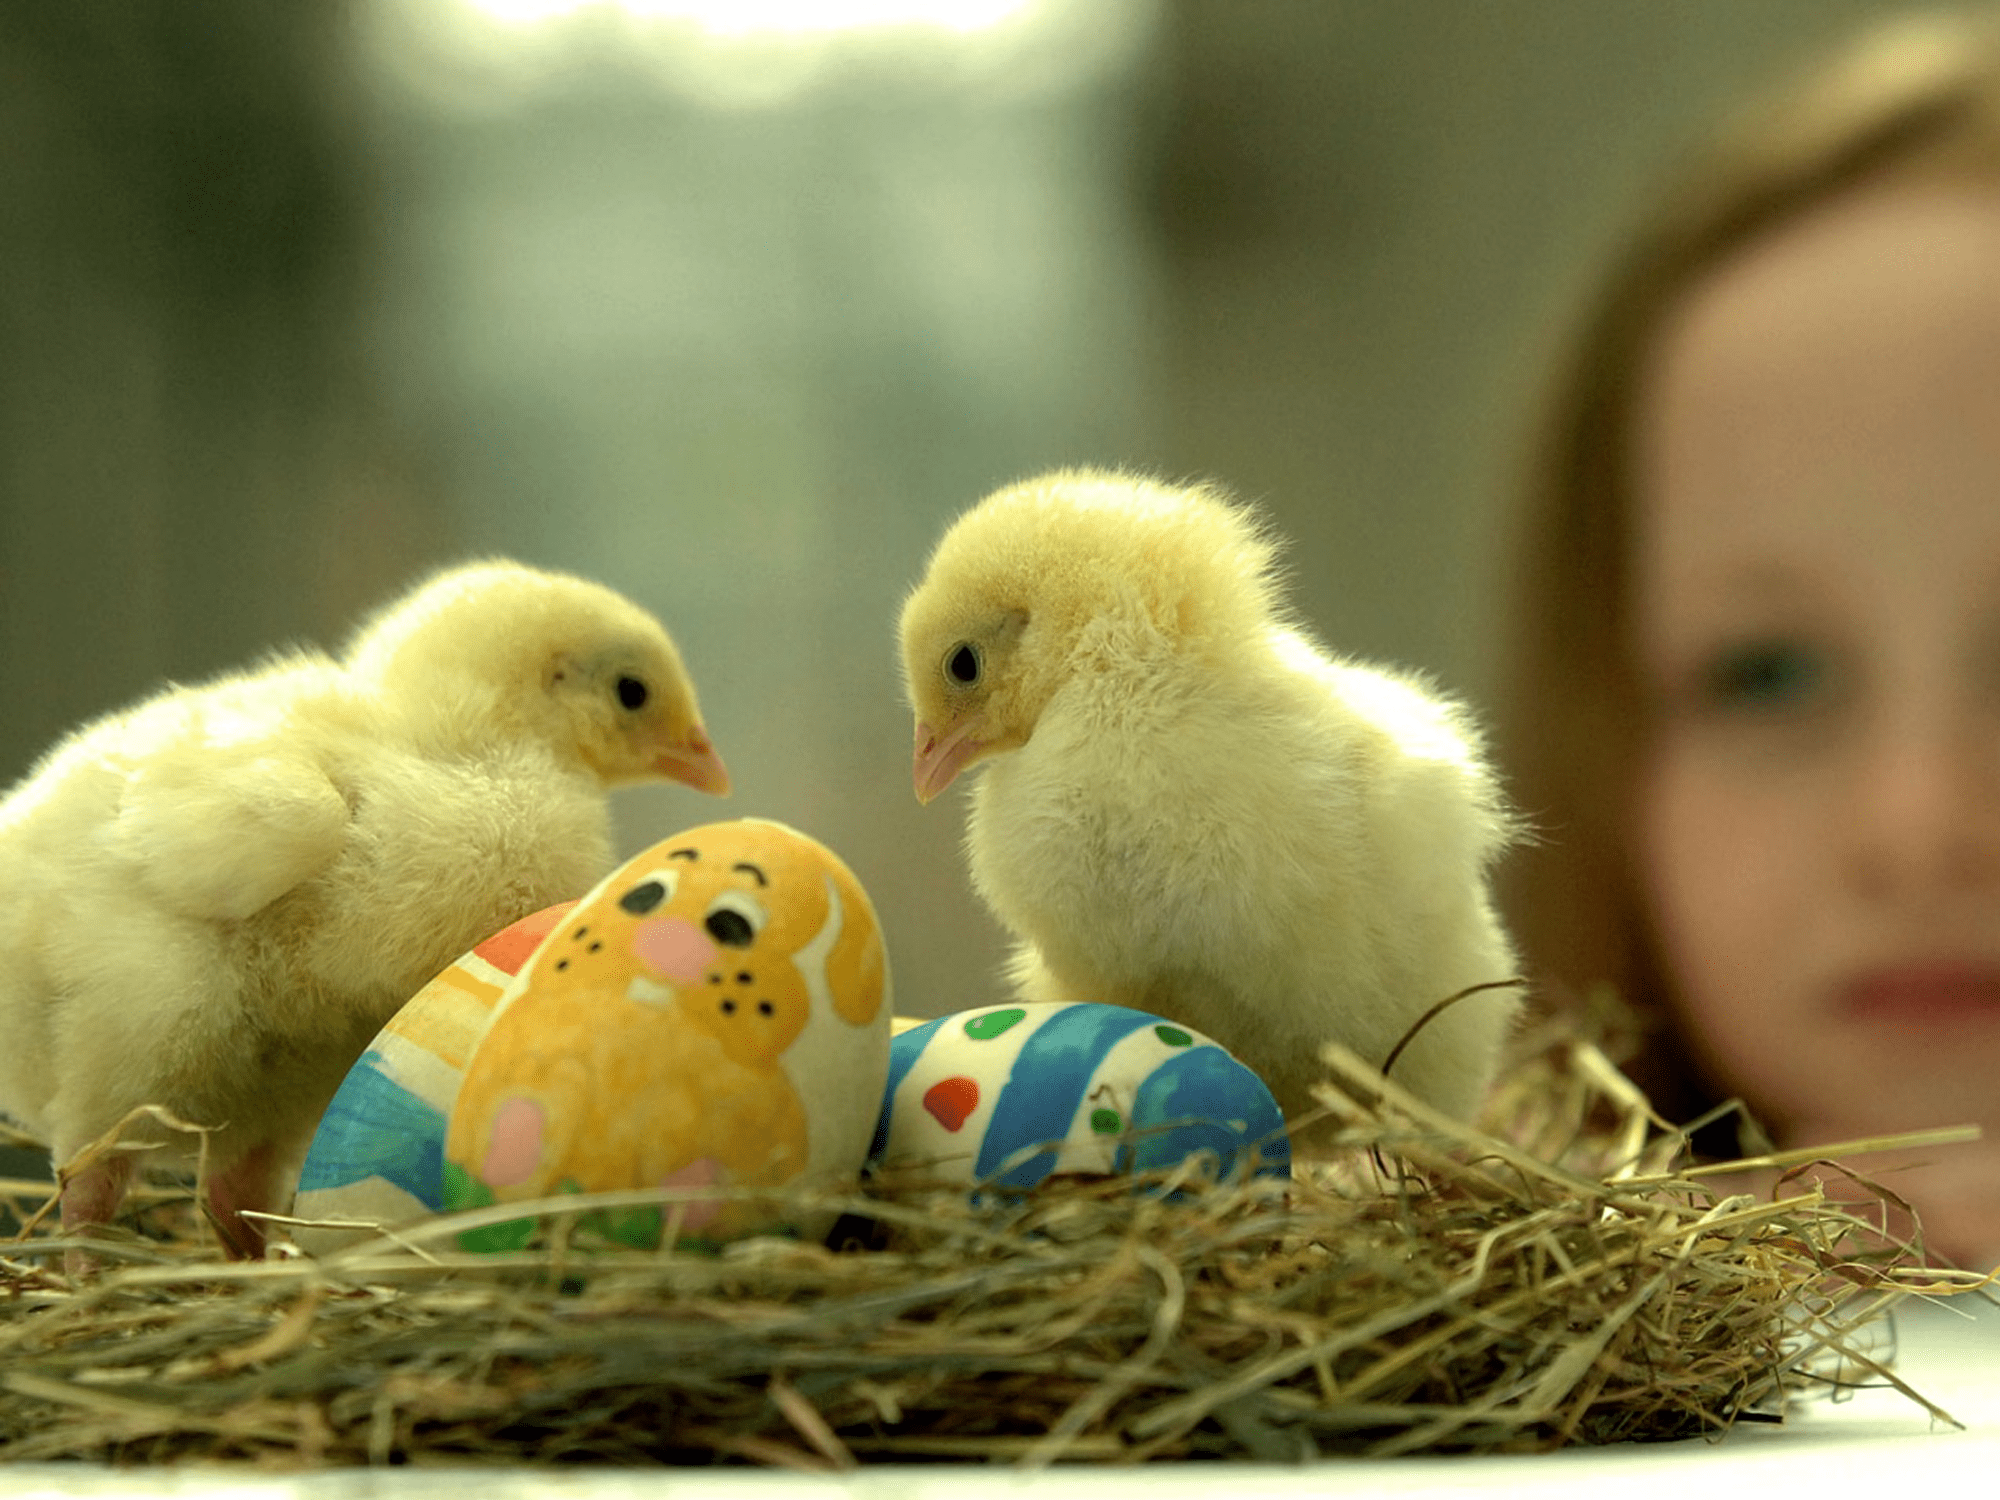 Free Easter wallpaper featuring young girl watching two baby chicks sit with Easter eggs